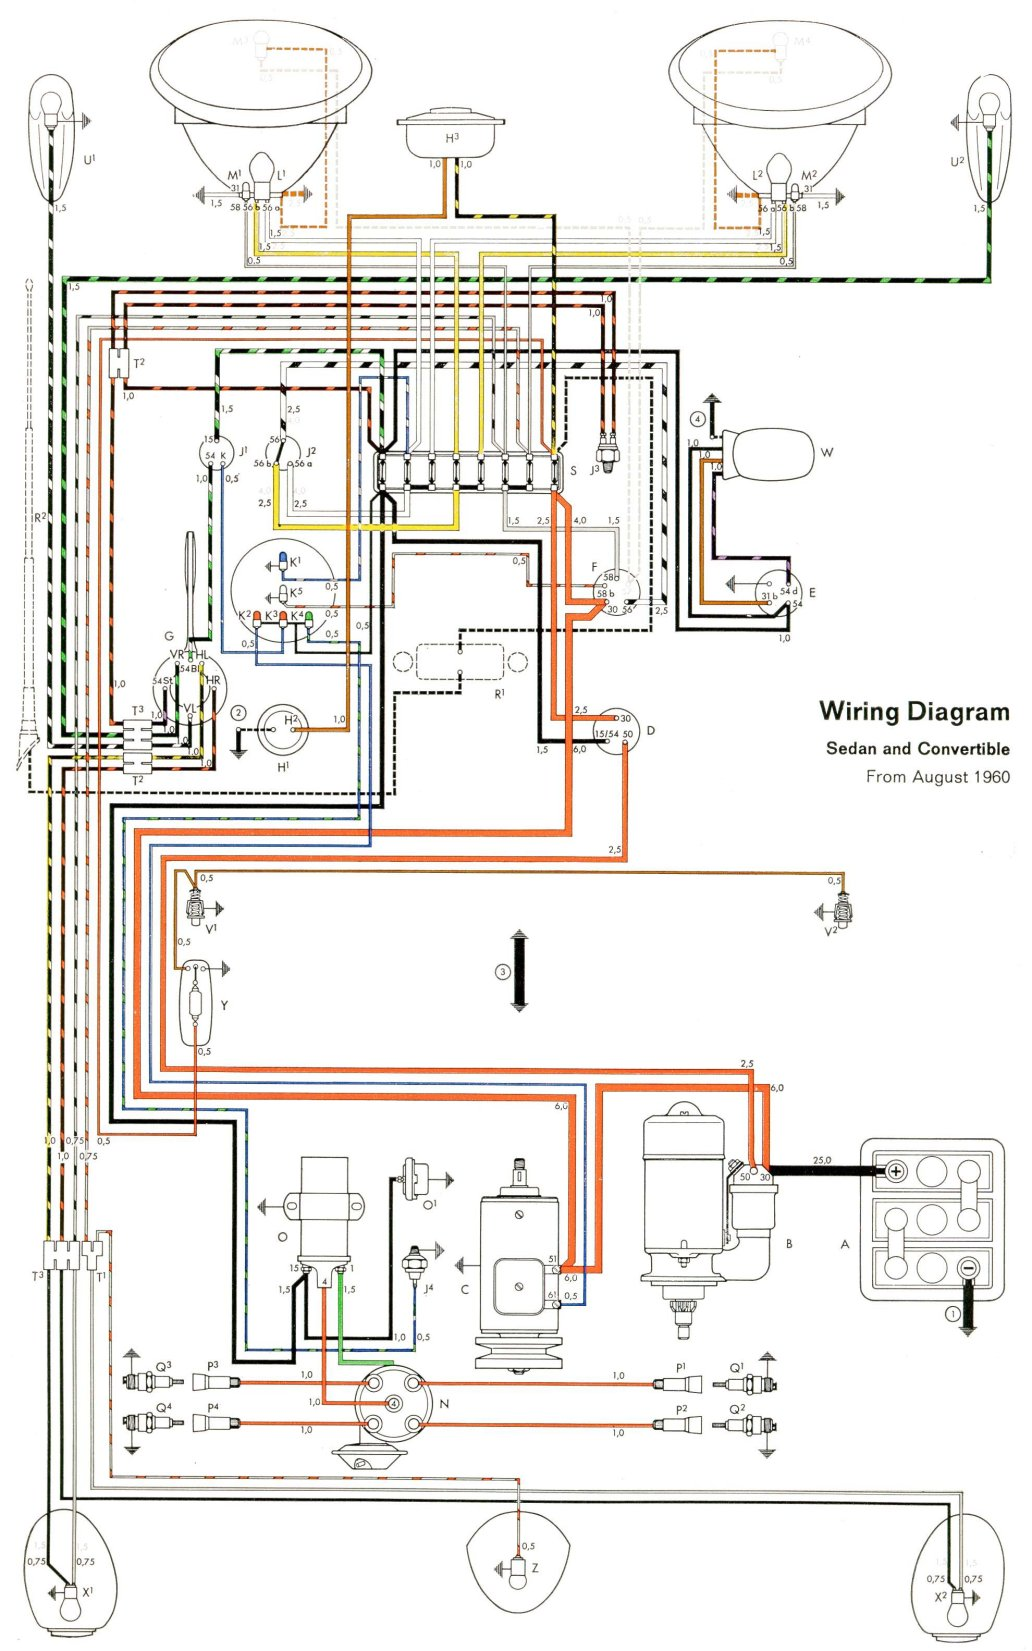 thesamba com type 1 wiring diagrams rh thesamba com  69 vw beetle wiring diagram